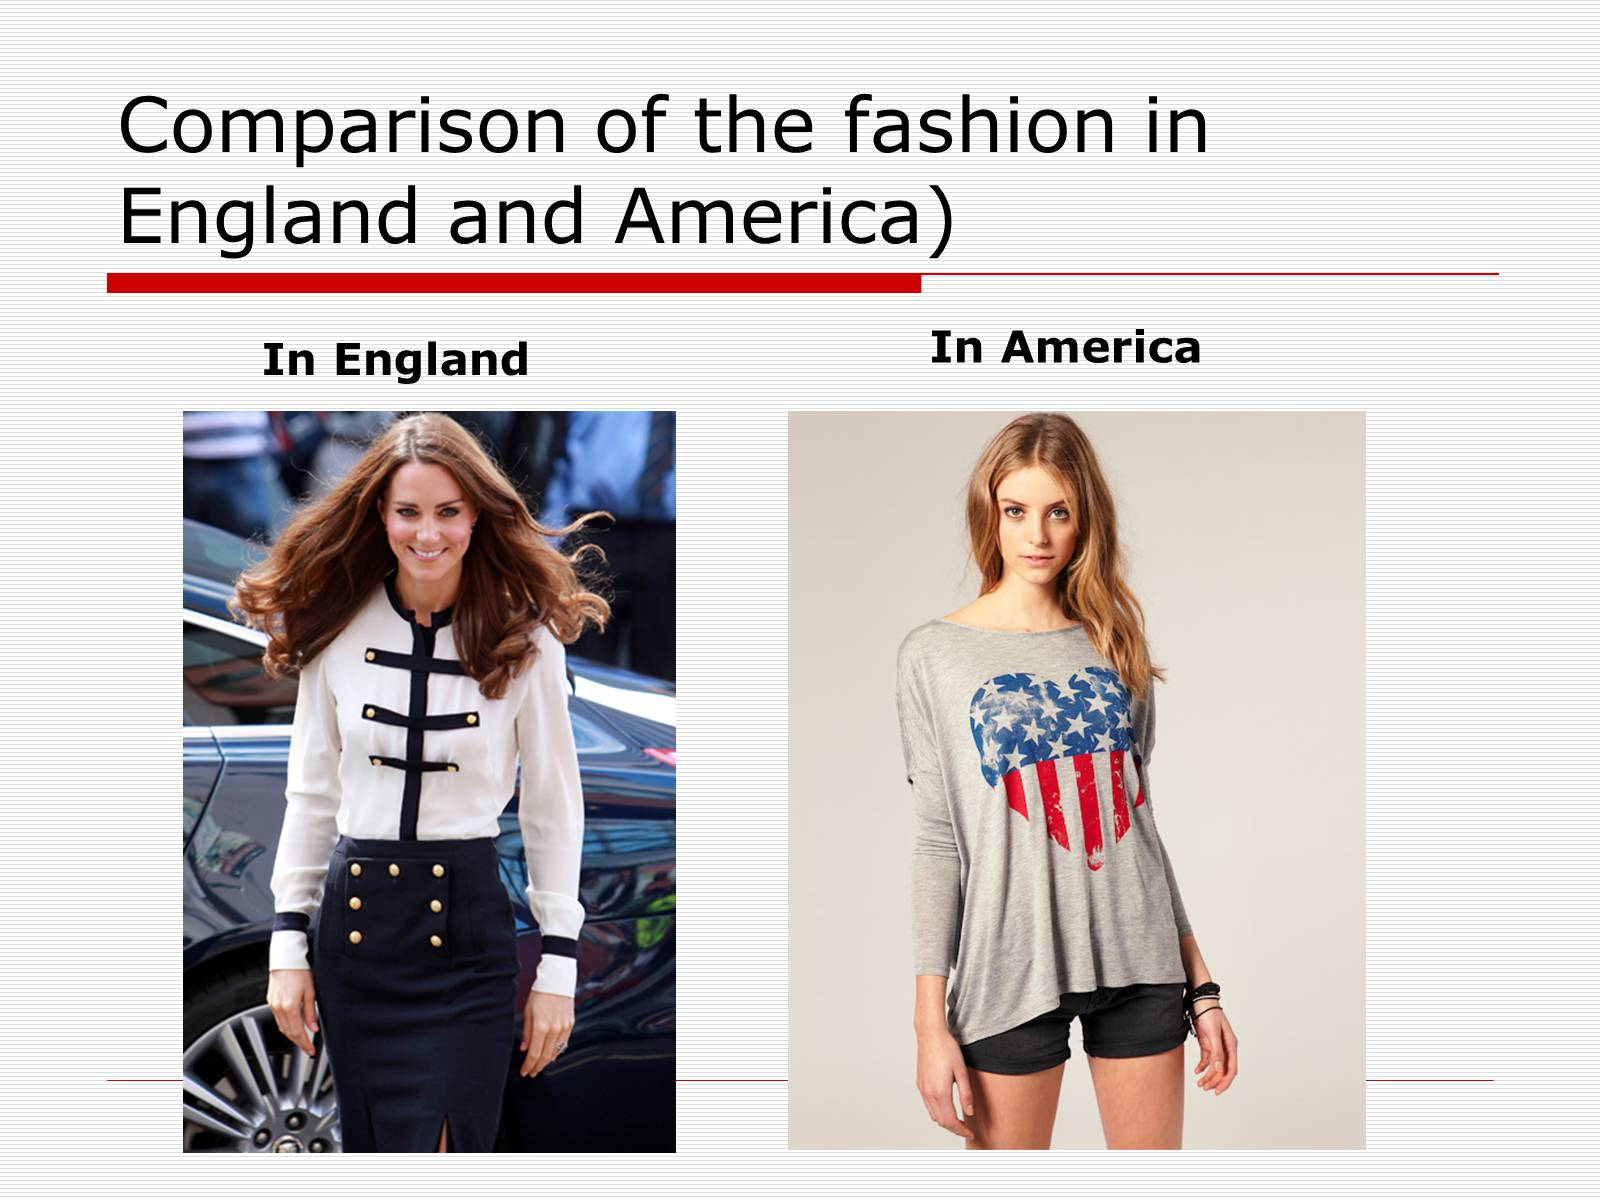 Презентація на тему «Comparison of the fashion in England and America» - Слайд #14